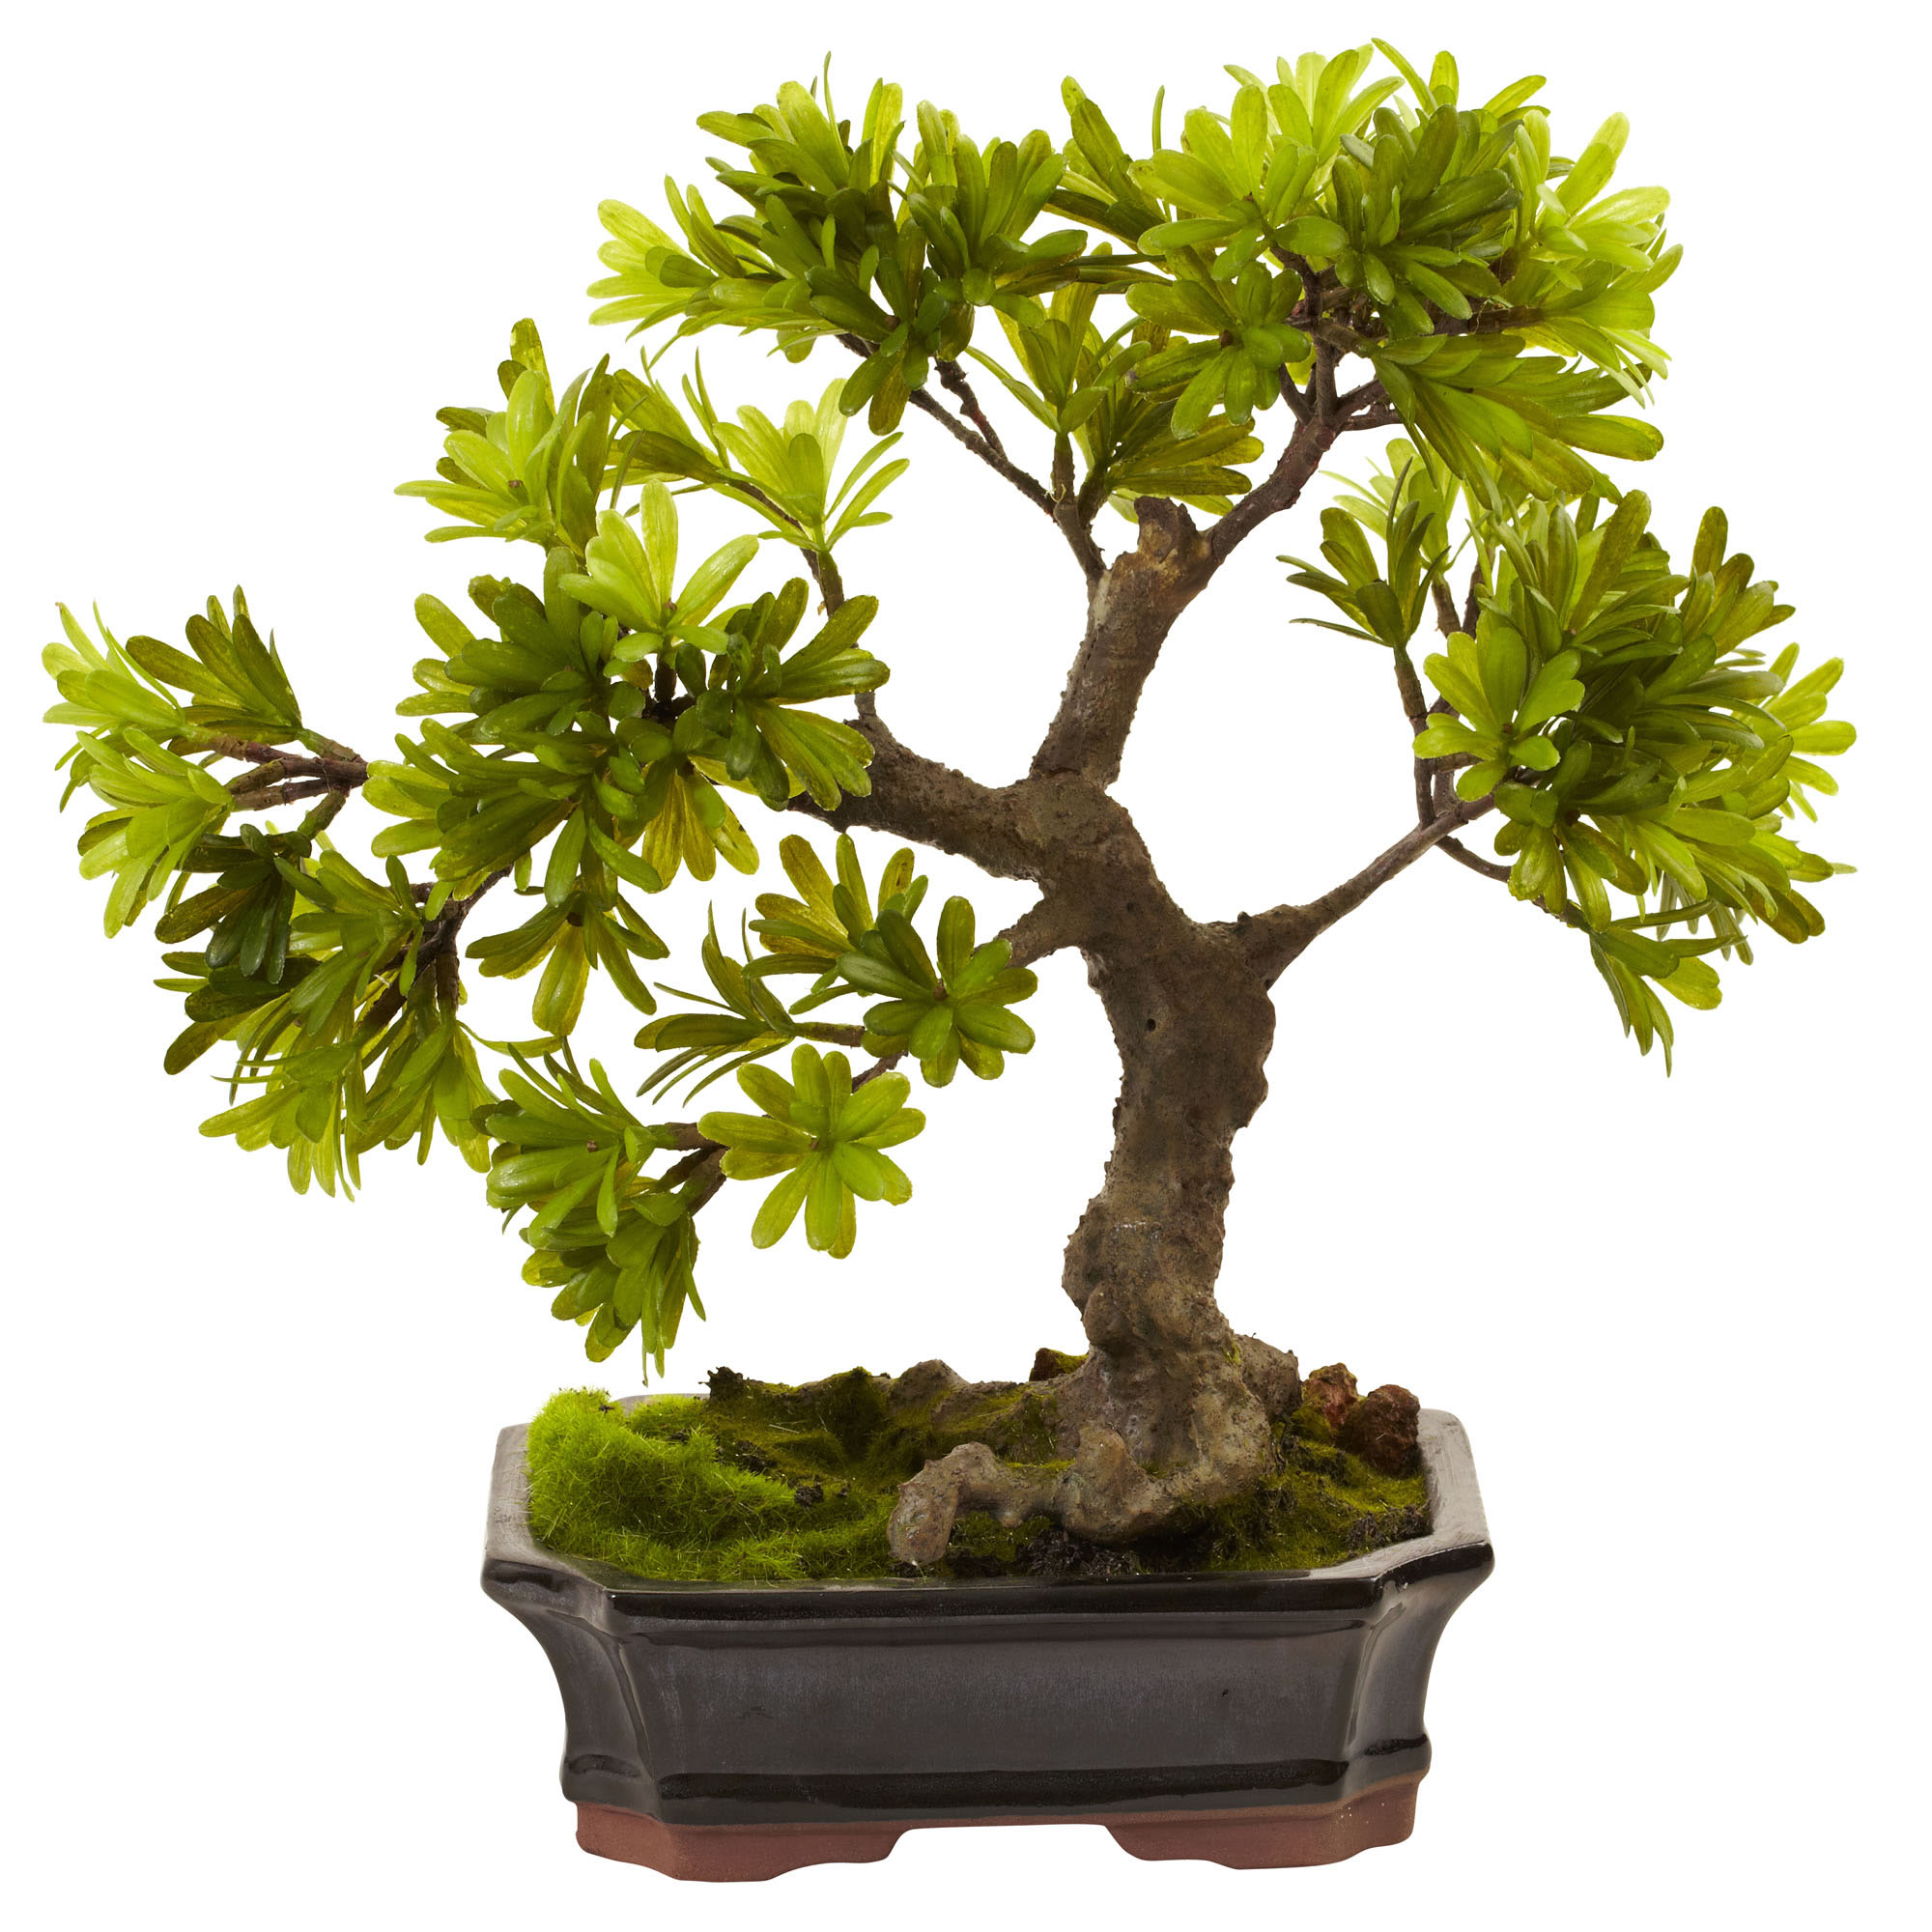 Preserved cypress bonsai 7 h contemporary phoenix by botanical - 14 Inch Indoor Silk Podocarpus In Mossed Base In Bonsai Planter